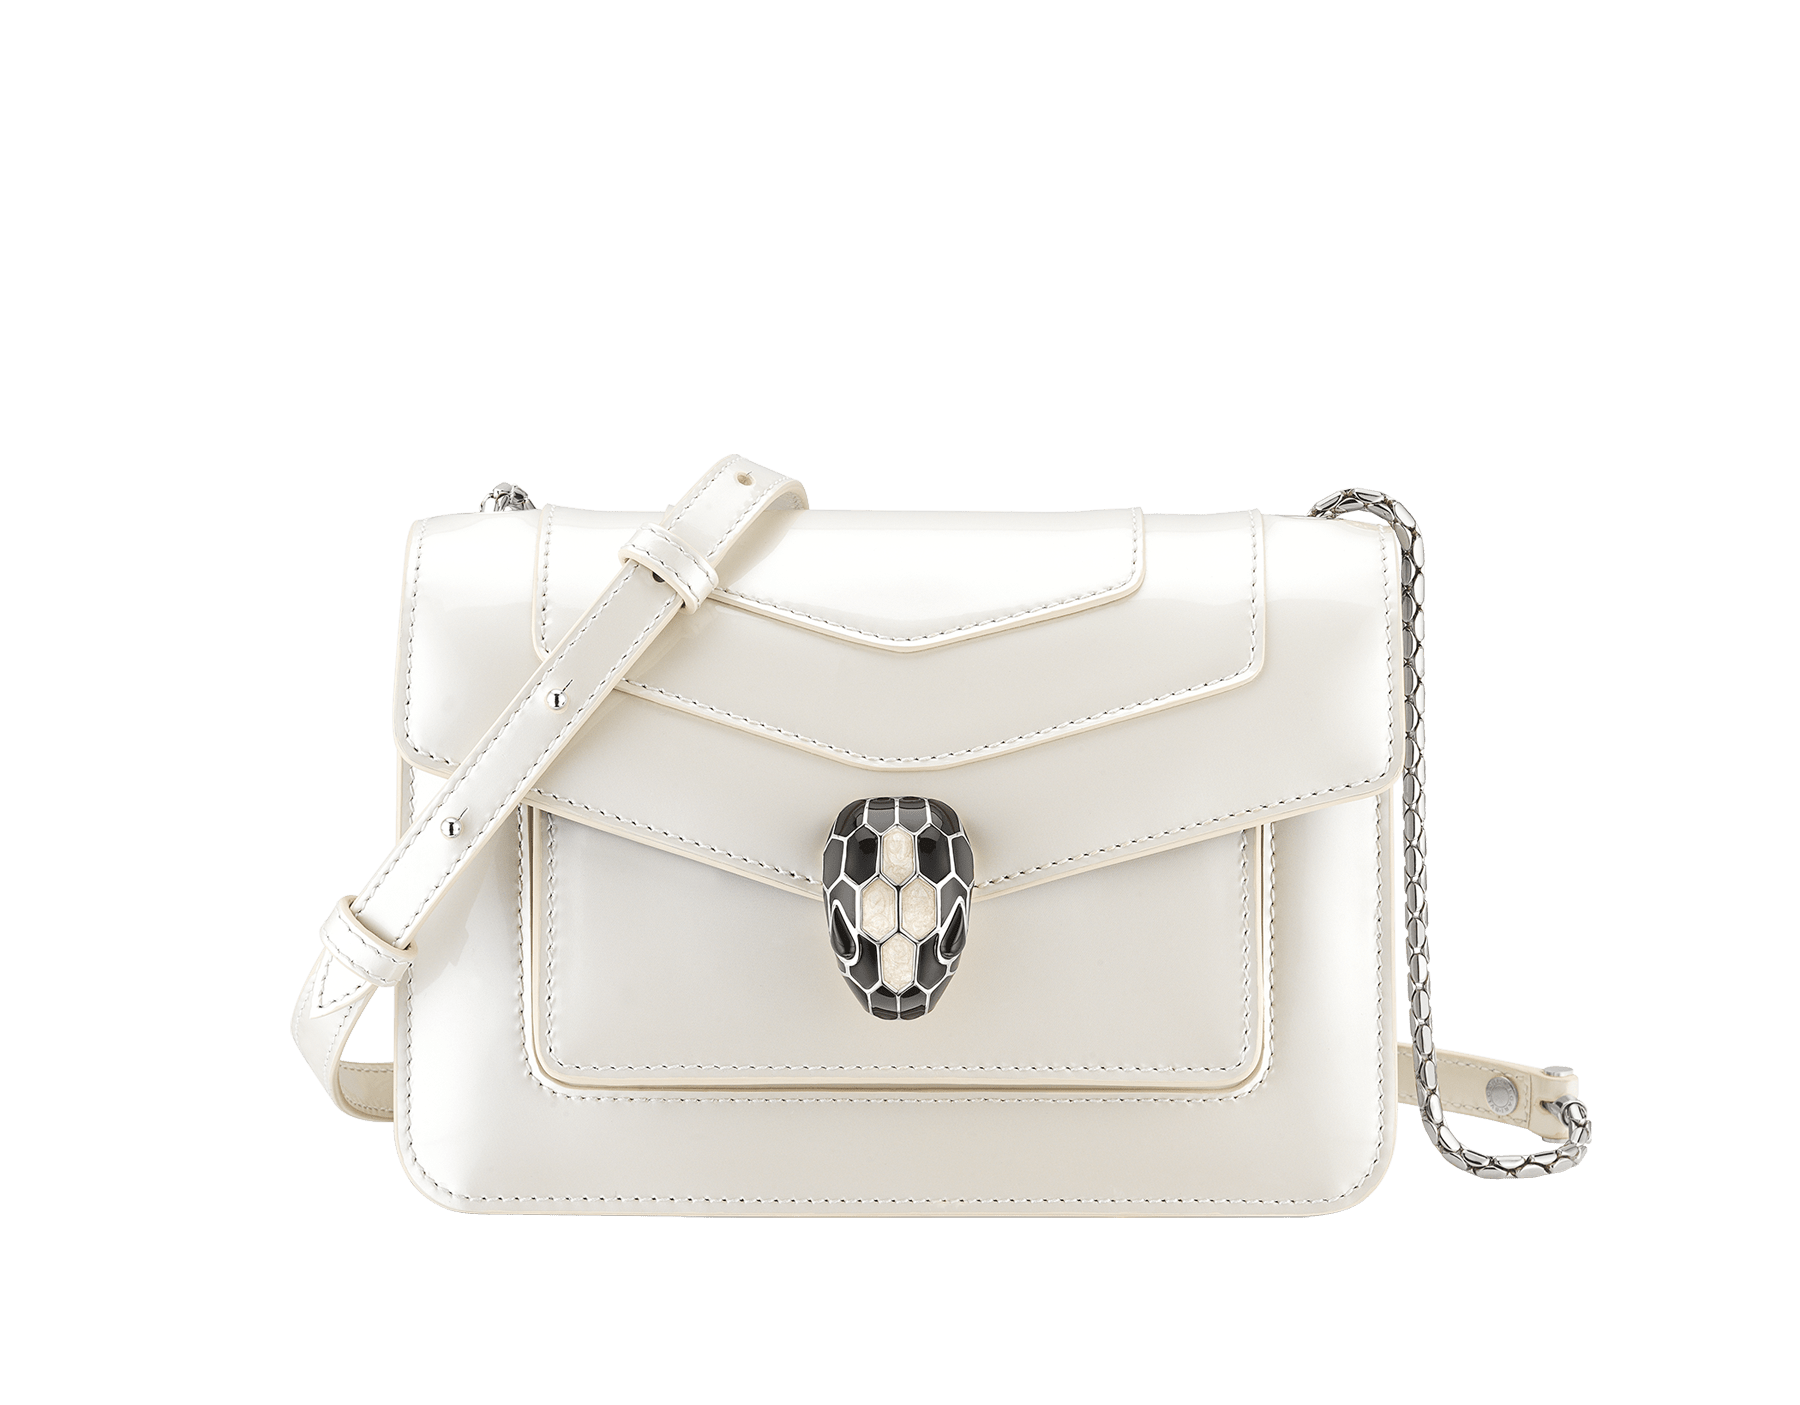 """Serpenti Forever"" crossbody bag in white agate calf leather with a varnished and pearled effect. Iconic snakehead closure in light gold plated brass enriched with black and pearled white agate enamel and black onyx eyes. 289771 image 1"